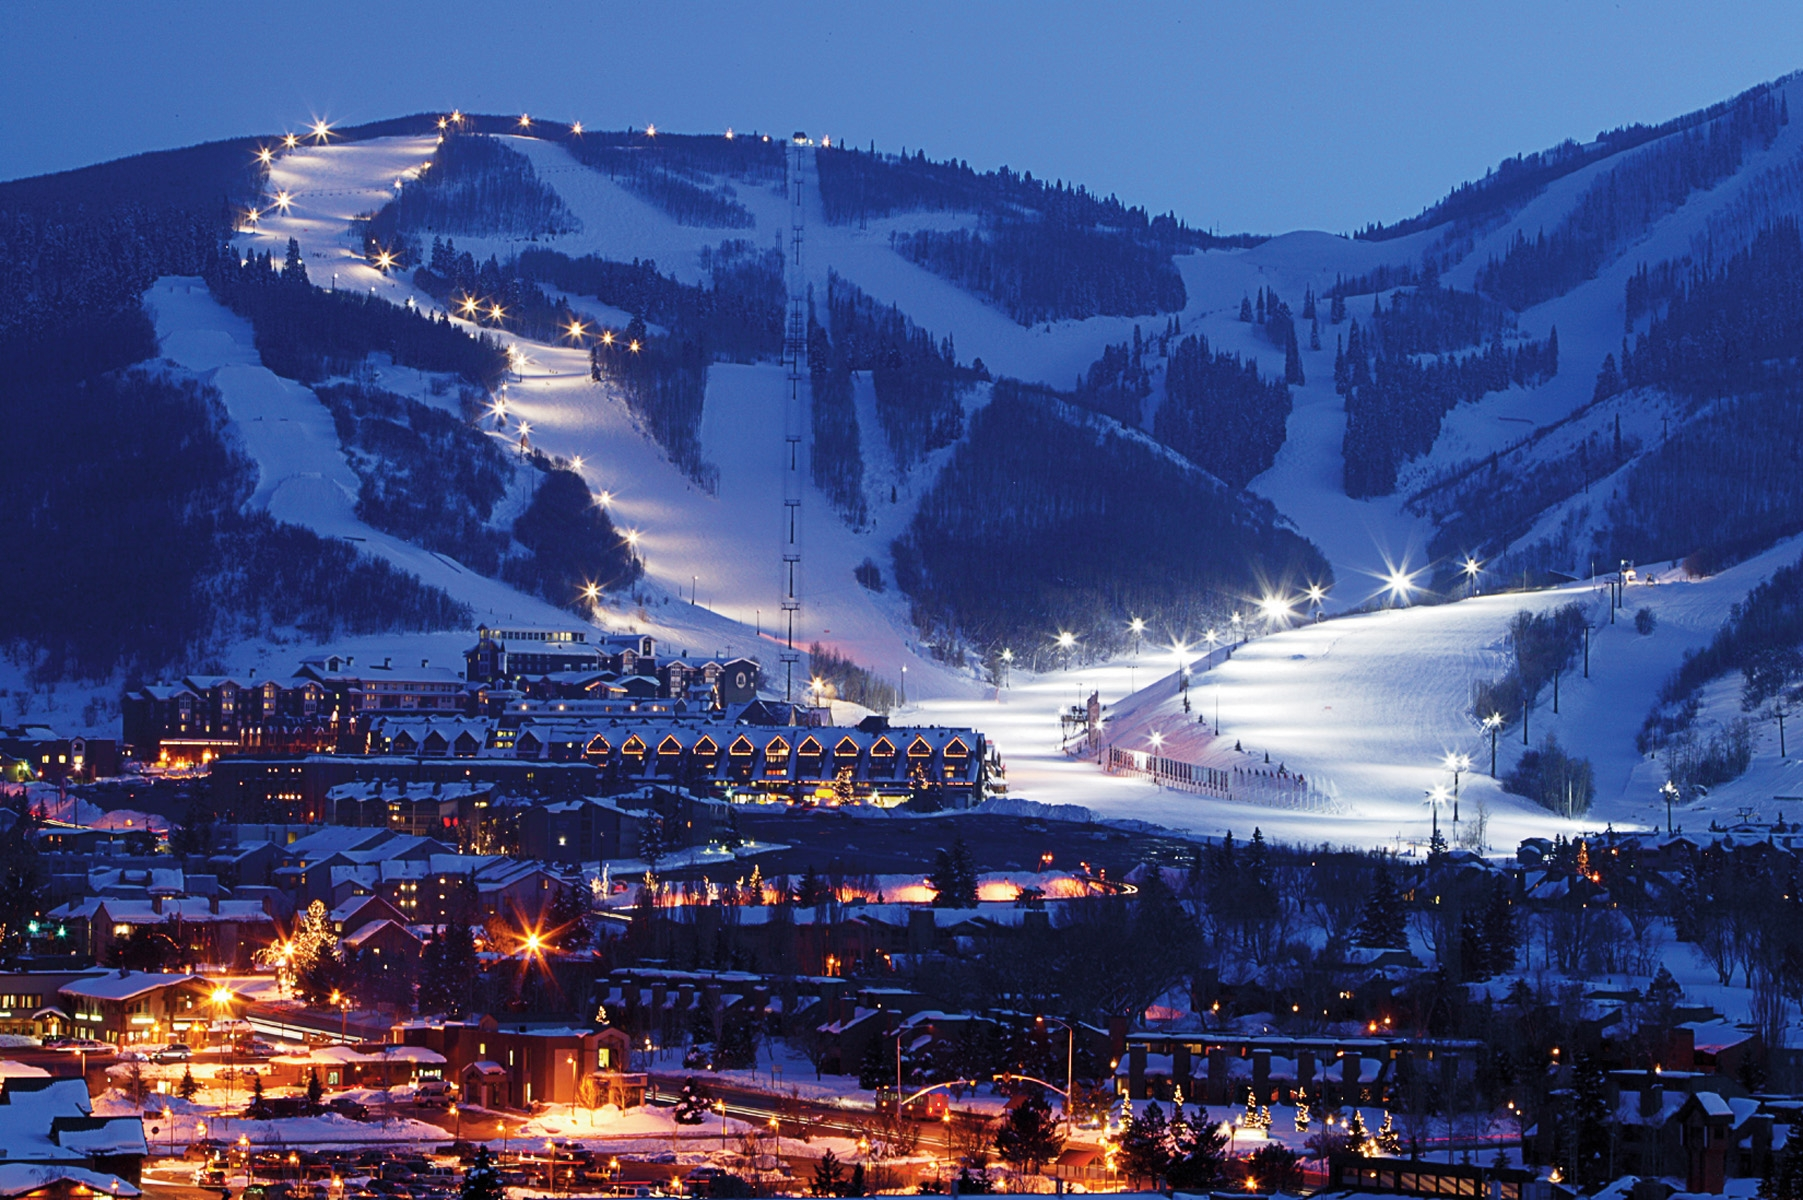 Vail Resorts Makes Surprise Offer to Buy Park City   SnowBrains 1803x1200